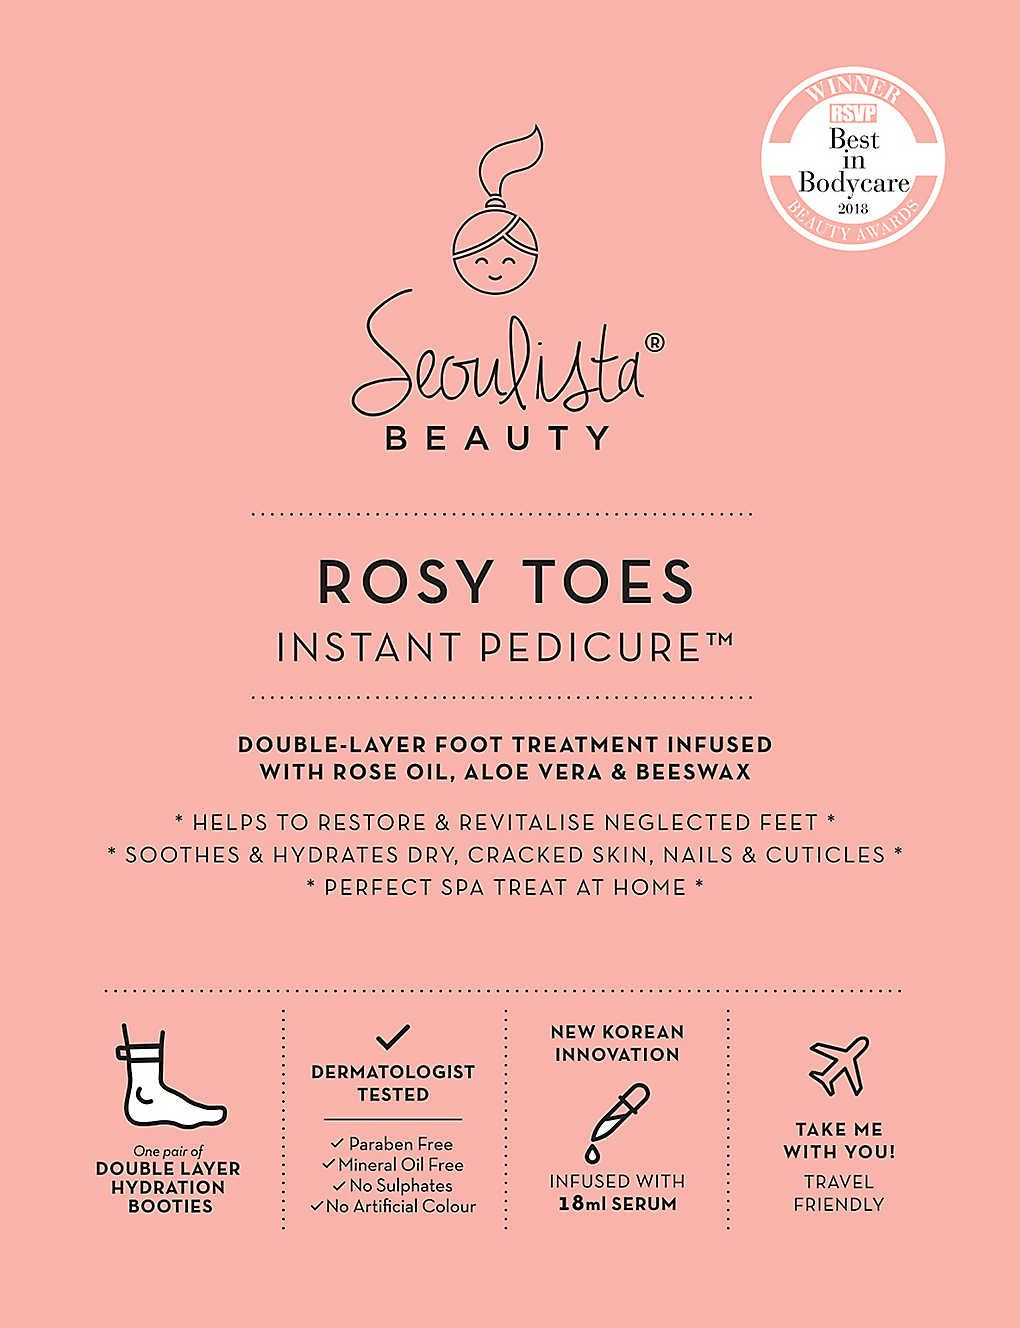 Rosy Toes Instant Pedicure